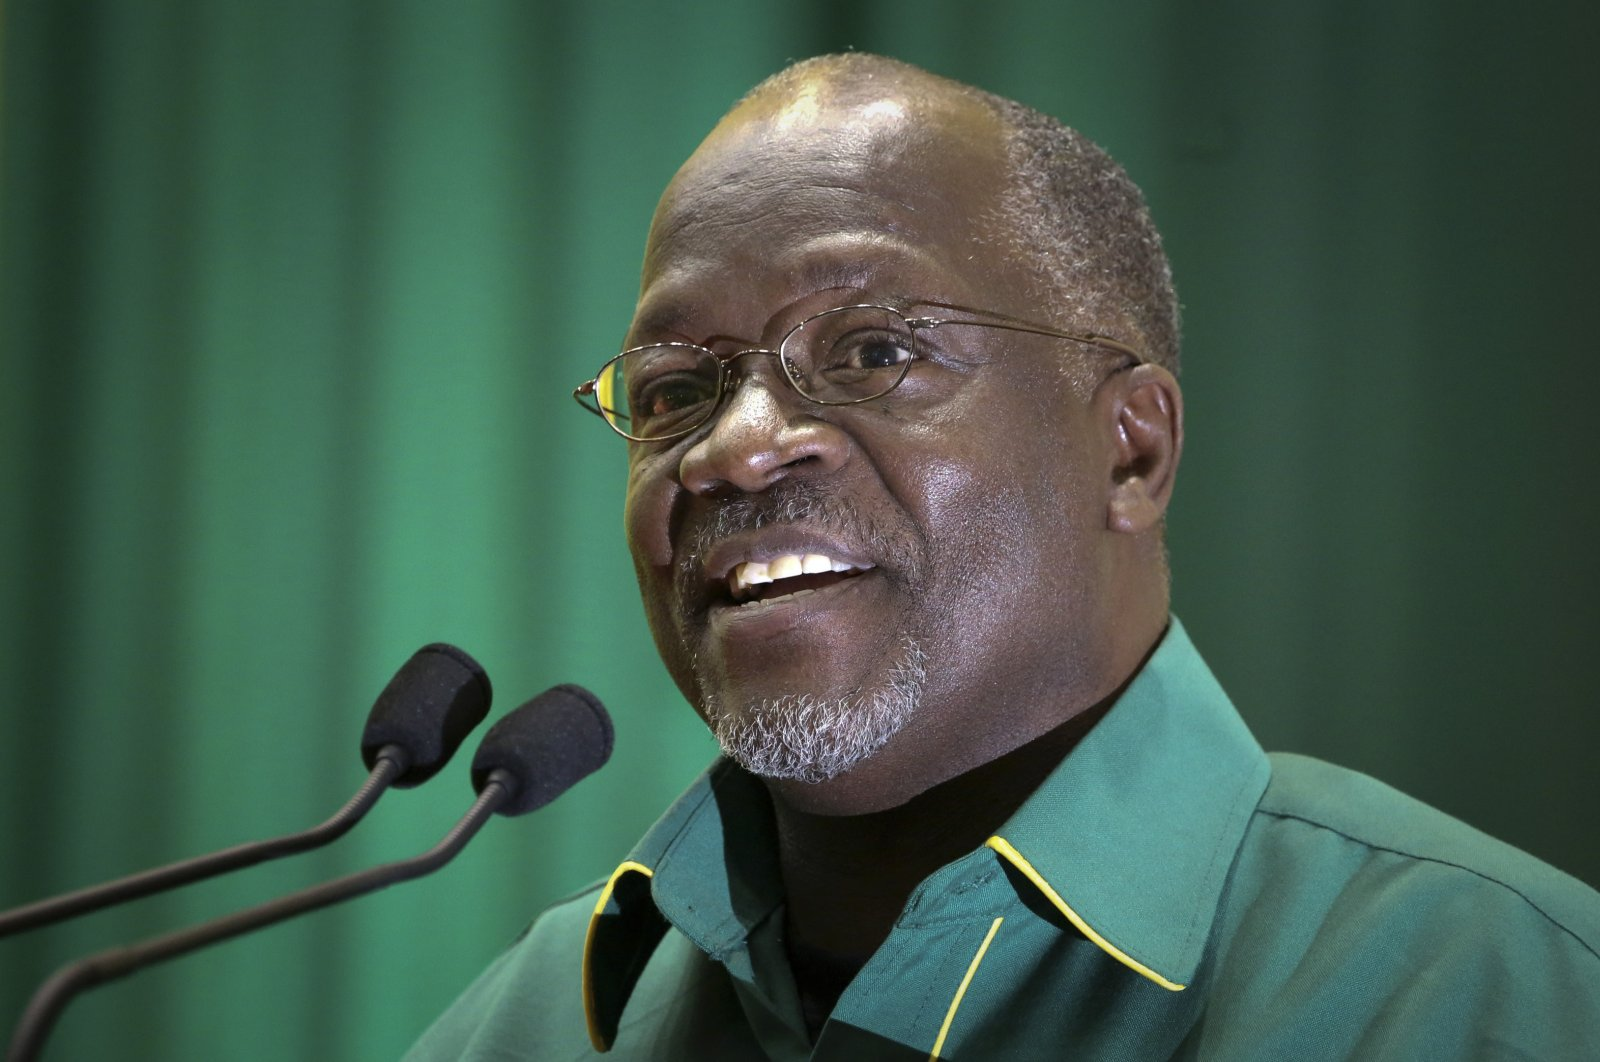 In this Saturday, July 11, 2015 file photo, Tanzania's then public works minister and presidential candidate John Magufuli speaks at an internal party poll to decide the ruling Chama Cha Mapinduzi (CCM) party's presidential candidate, which they later chose him to be, in Dodoma, Tanzania. (AP Photo)